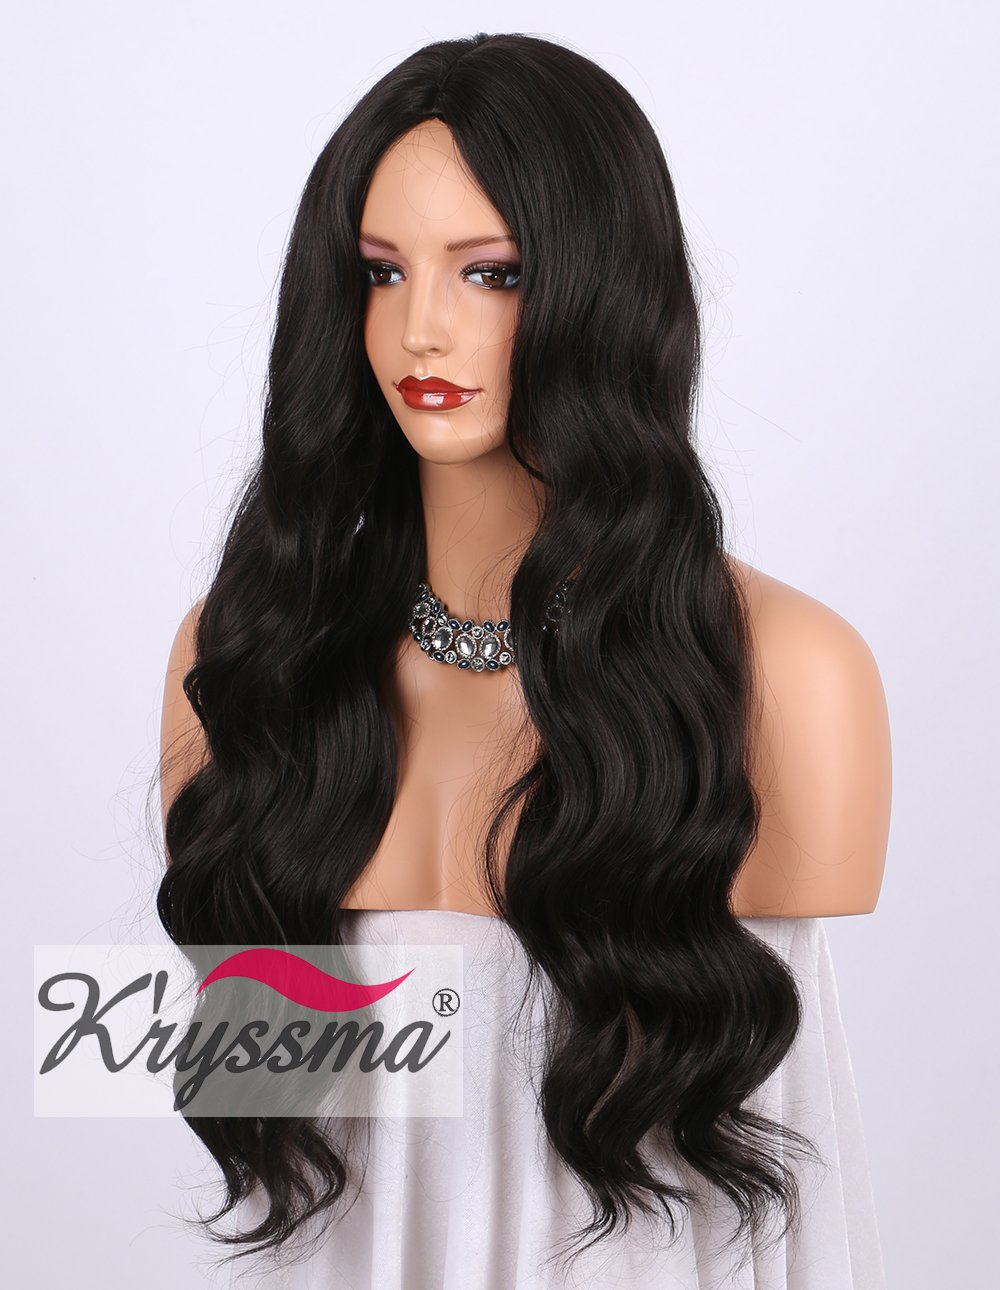 K'ryssma Dark Brown Synthetic Wigs for Women - Natural Looking Brown #2 Middle Part Wavy Long Hair Wig Heat Resistant (24inches)